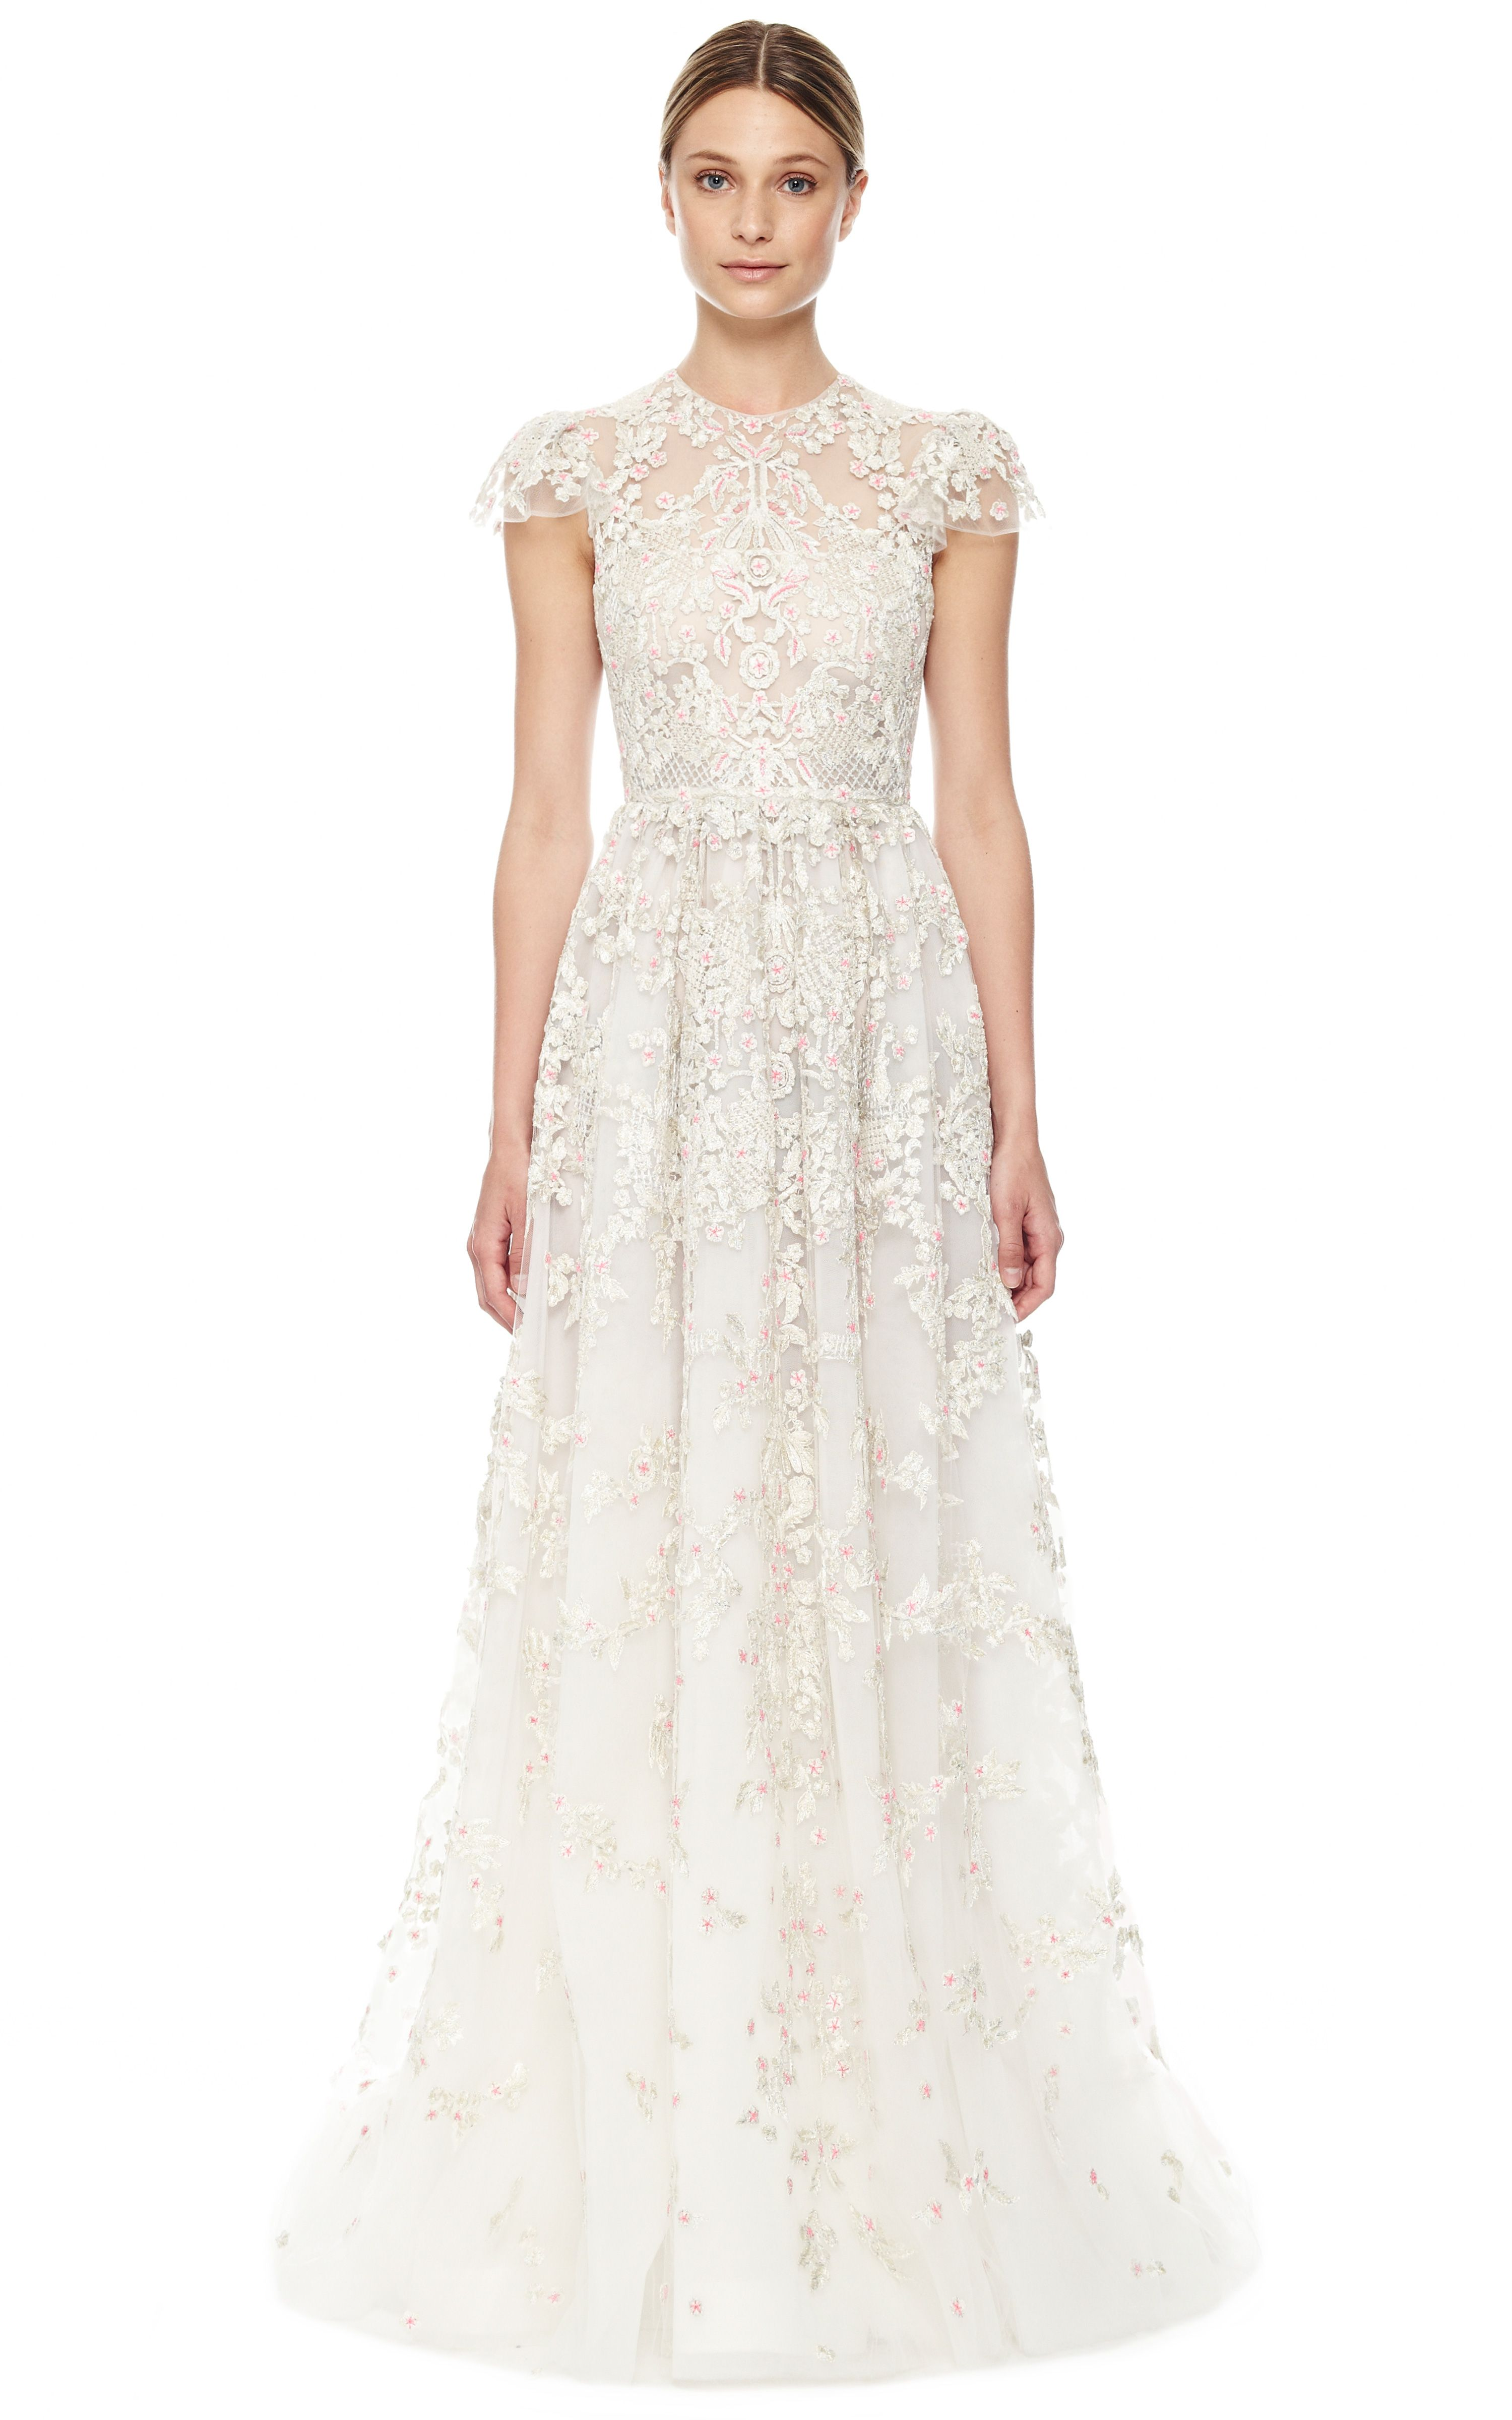 Avorio Multi Tulle Illusione Gown By Valentino Now Available On Moda Operandi